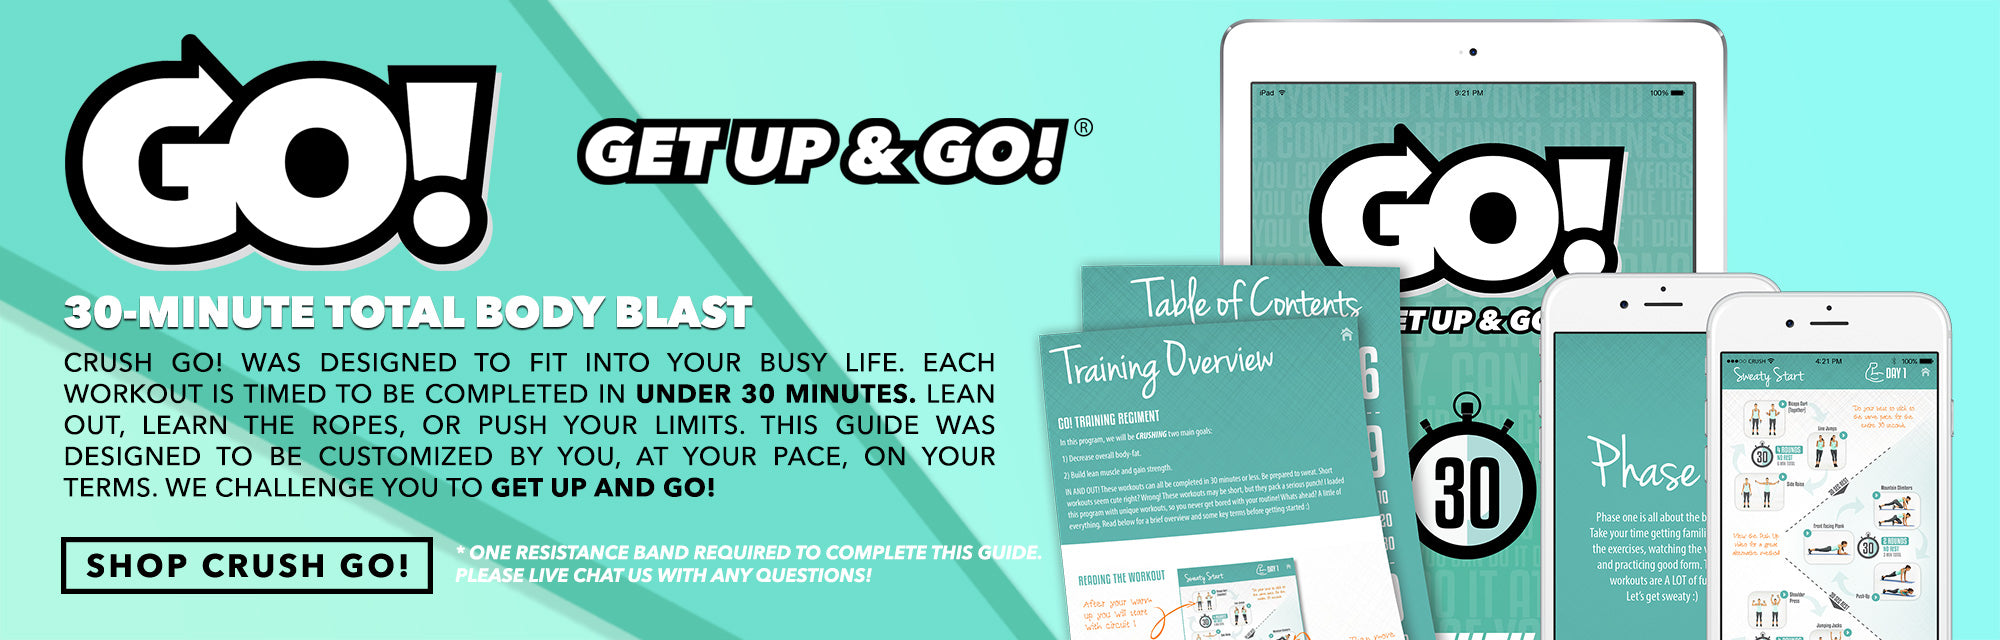 GO! WORKOUT GUIDE BY CRUSH FIT